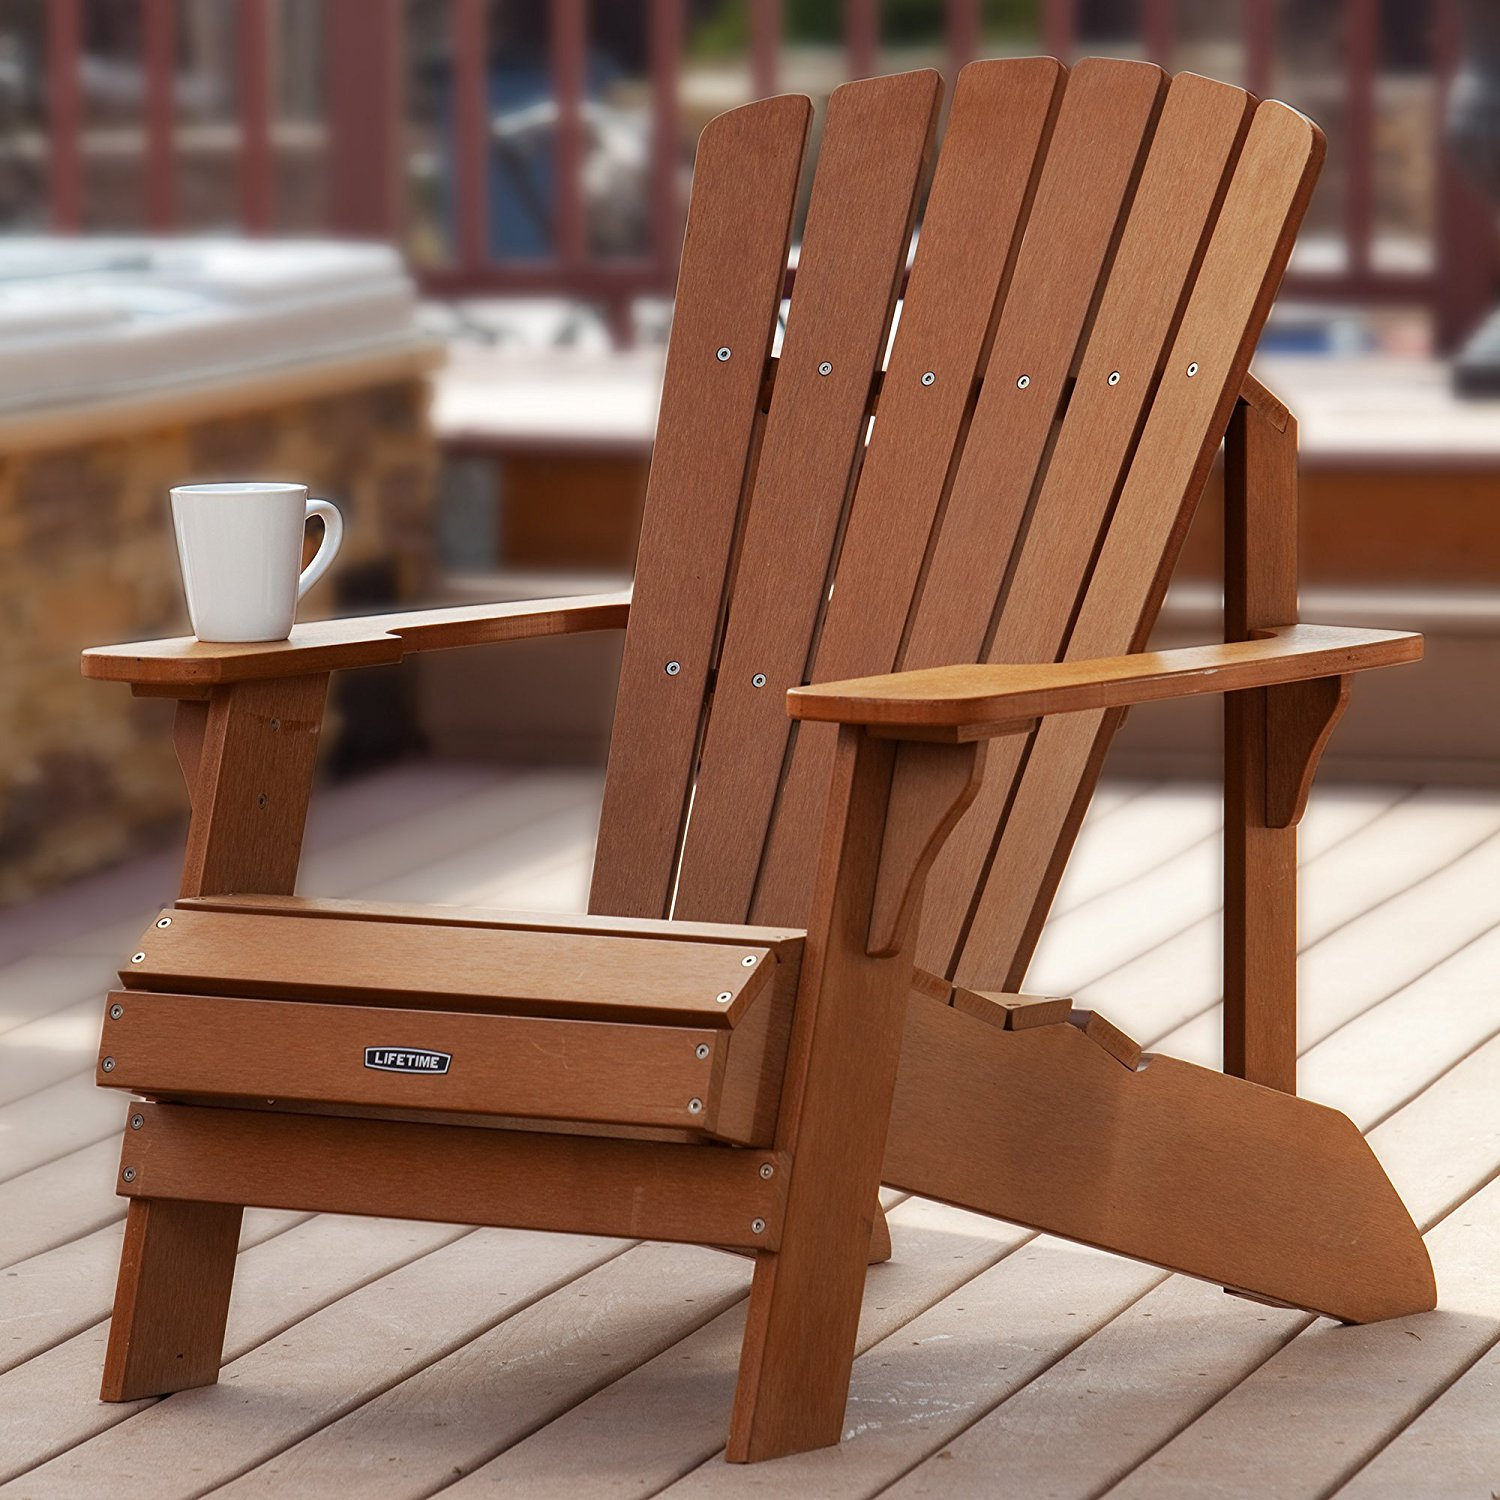 lifetime adirondack chairs animal print high chair 60064 for your outdoor space